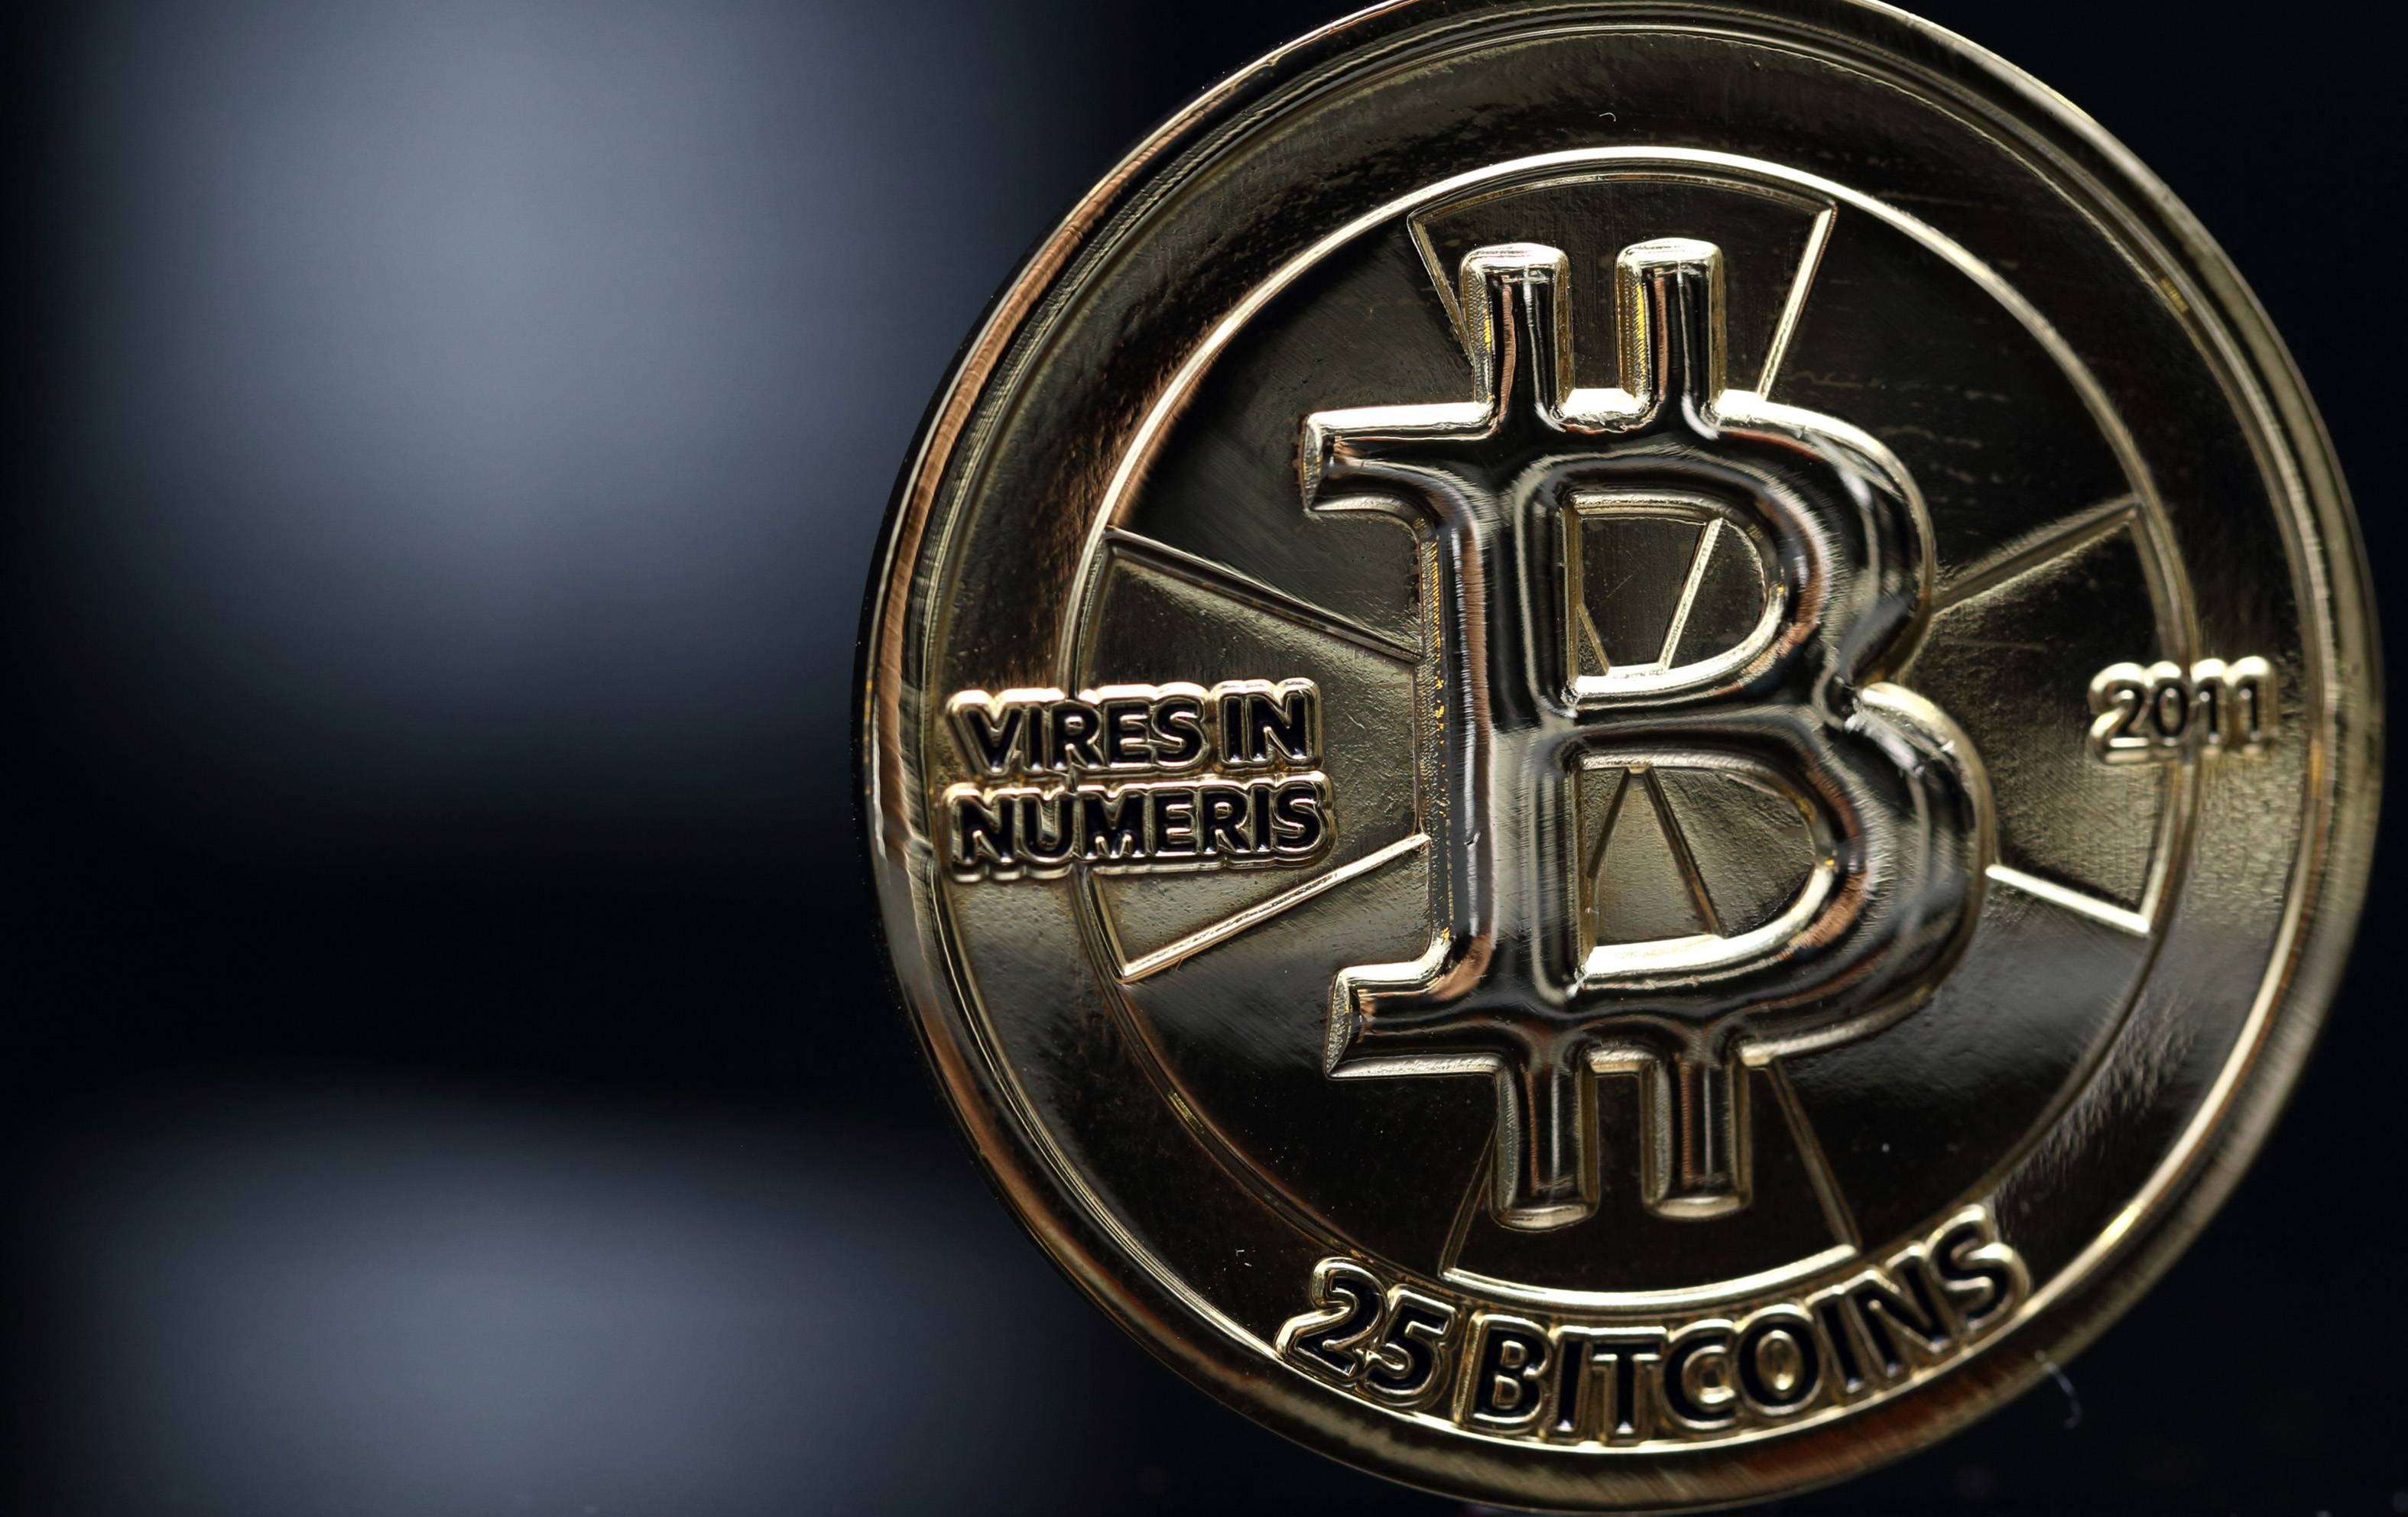 A twenty-five bitcoin. When bitcoin debuted in 2009, it was hailed as a technology that would revolutionize the world of finance by making micro-payments practicable. But now many companies hoping to do commerce via bitcoin are finding the fees prohibitive.